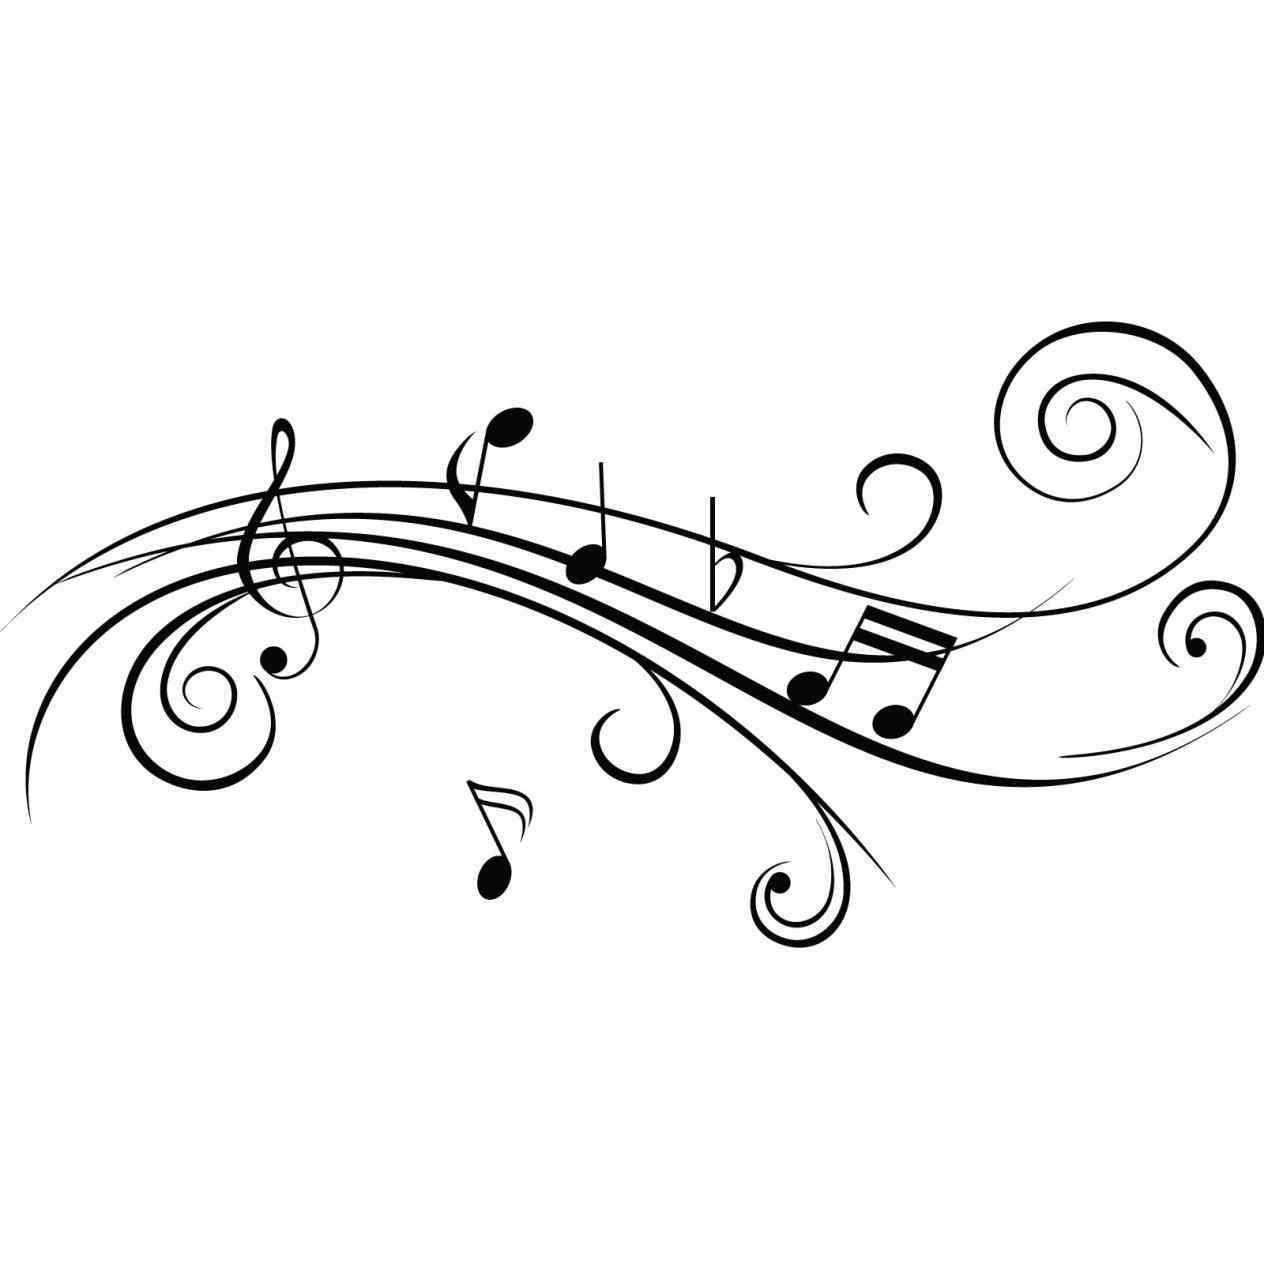 1264x1264 note cool music notes drawings drawing free download clip art on